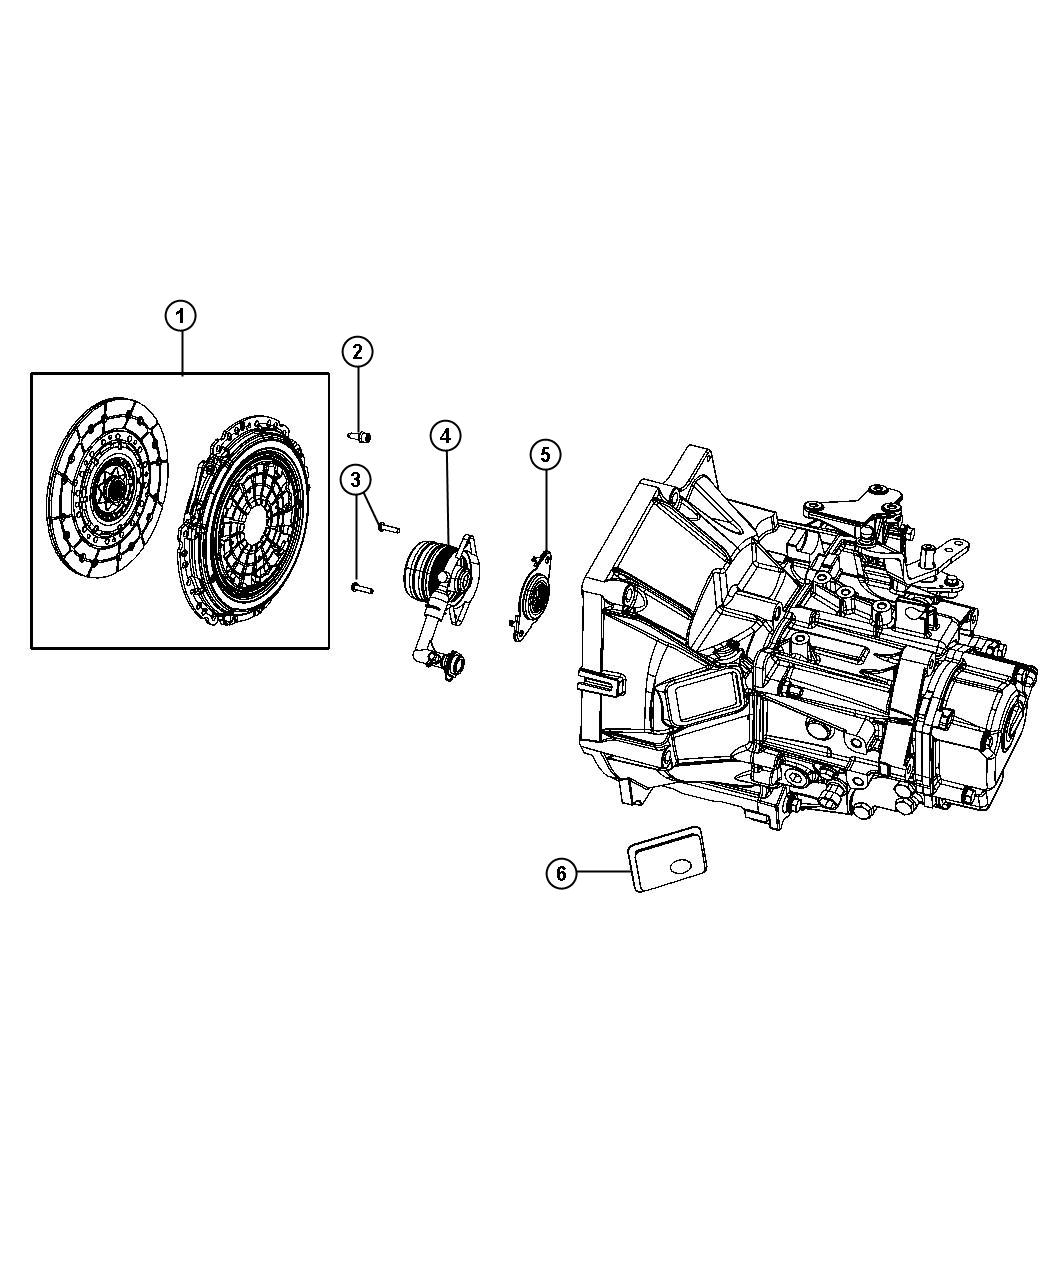 2013 Fiat 500X Clutch kit. Used for: pressure plate and